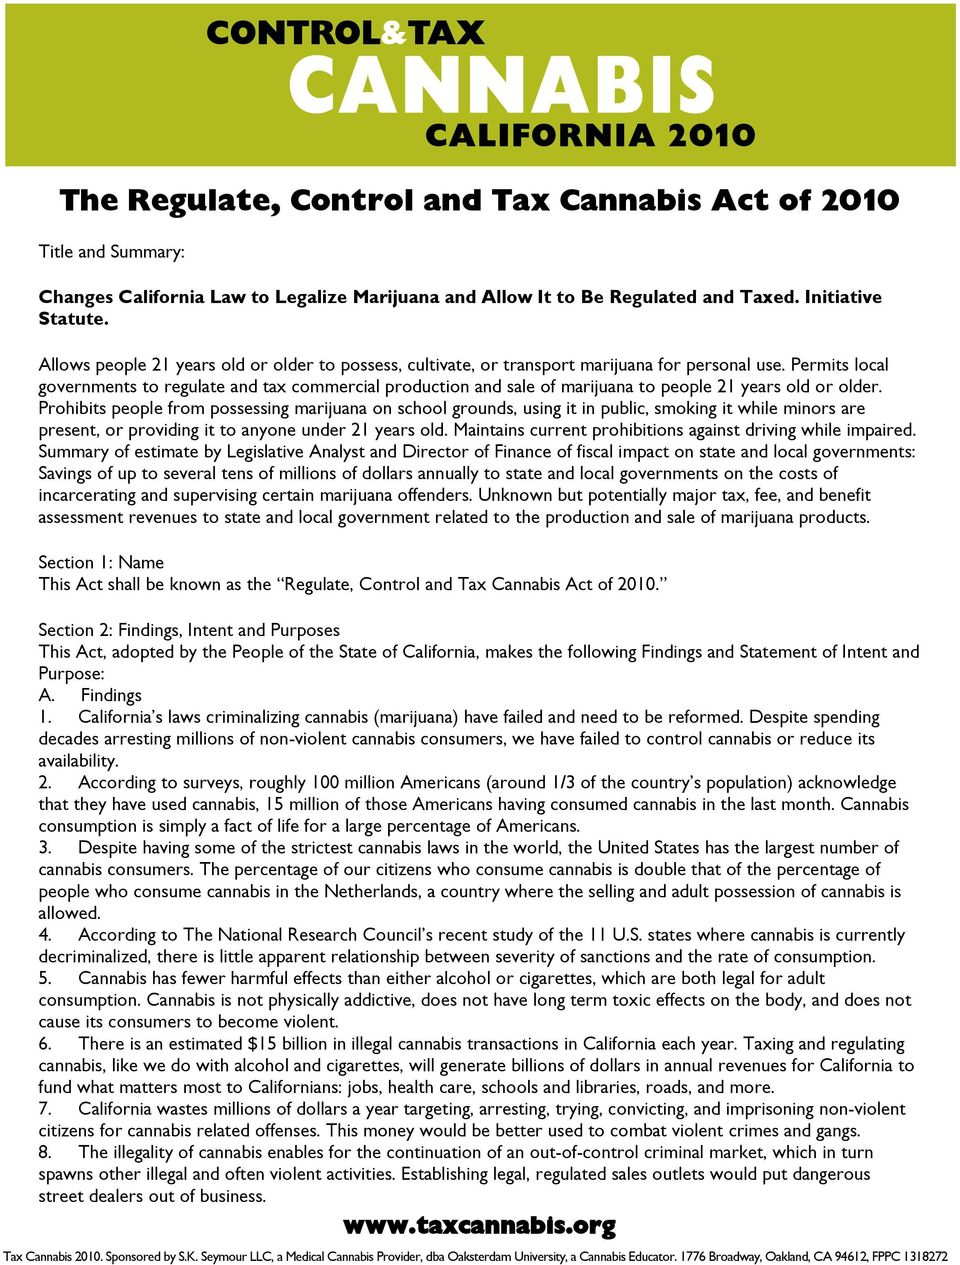 Permits local governments to regulate and tax commercial production and sale of marijuana to people 21 years old or older.